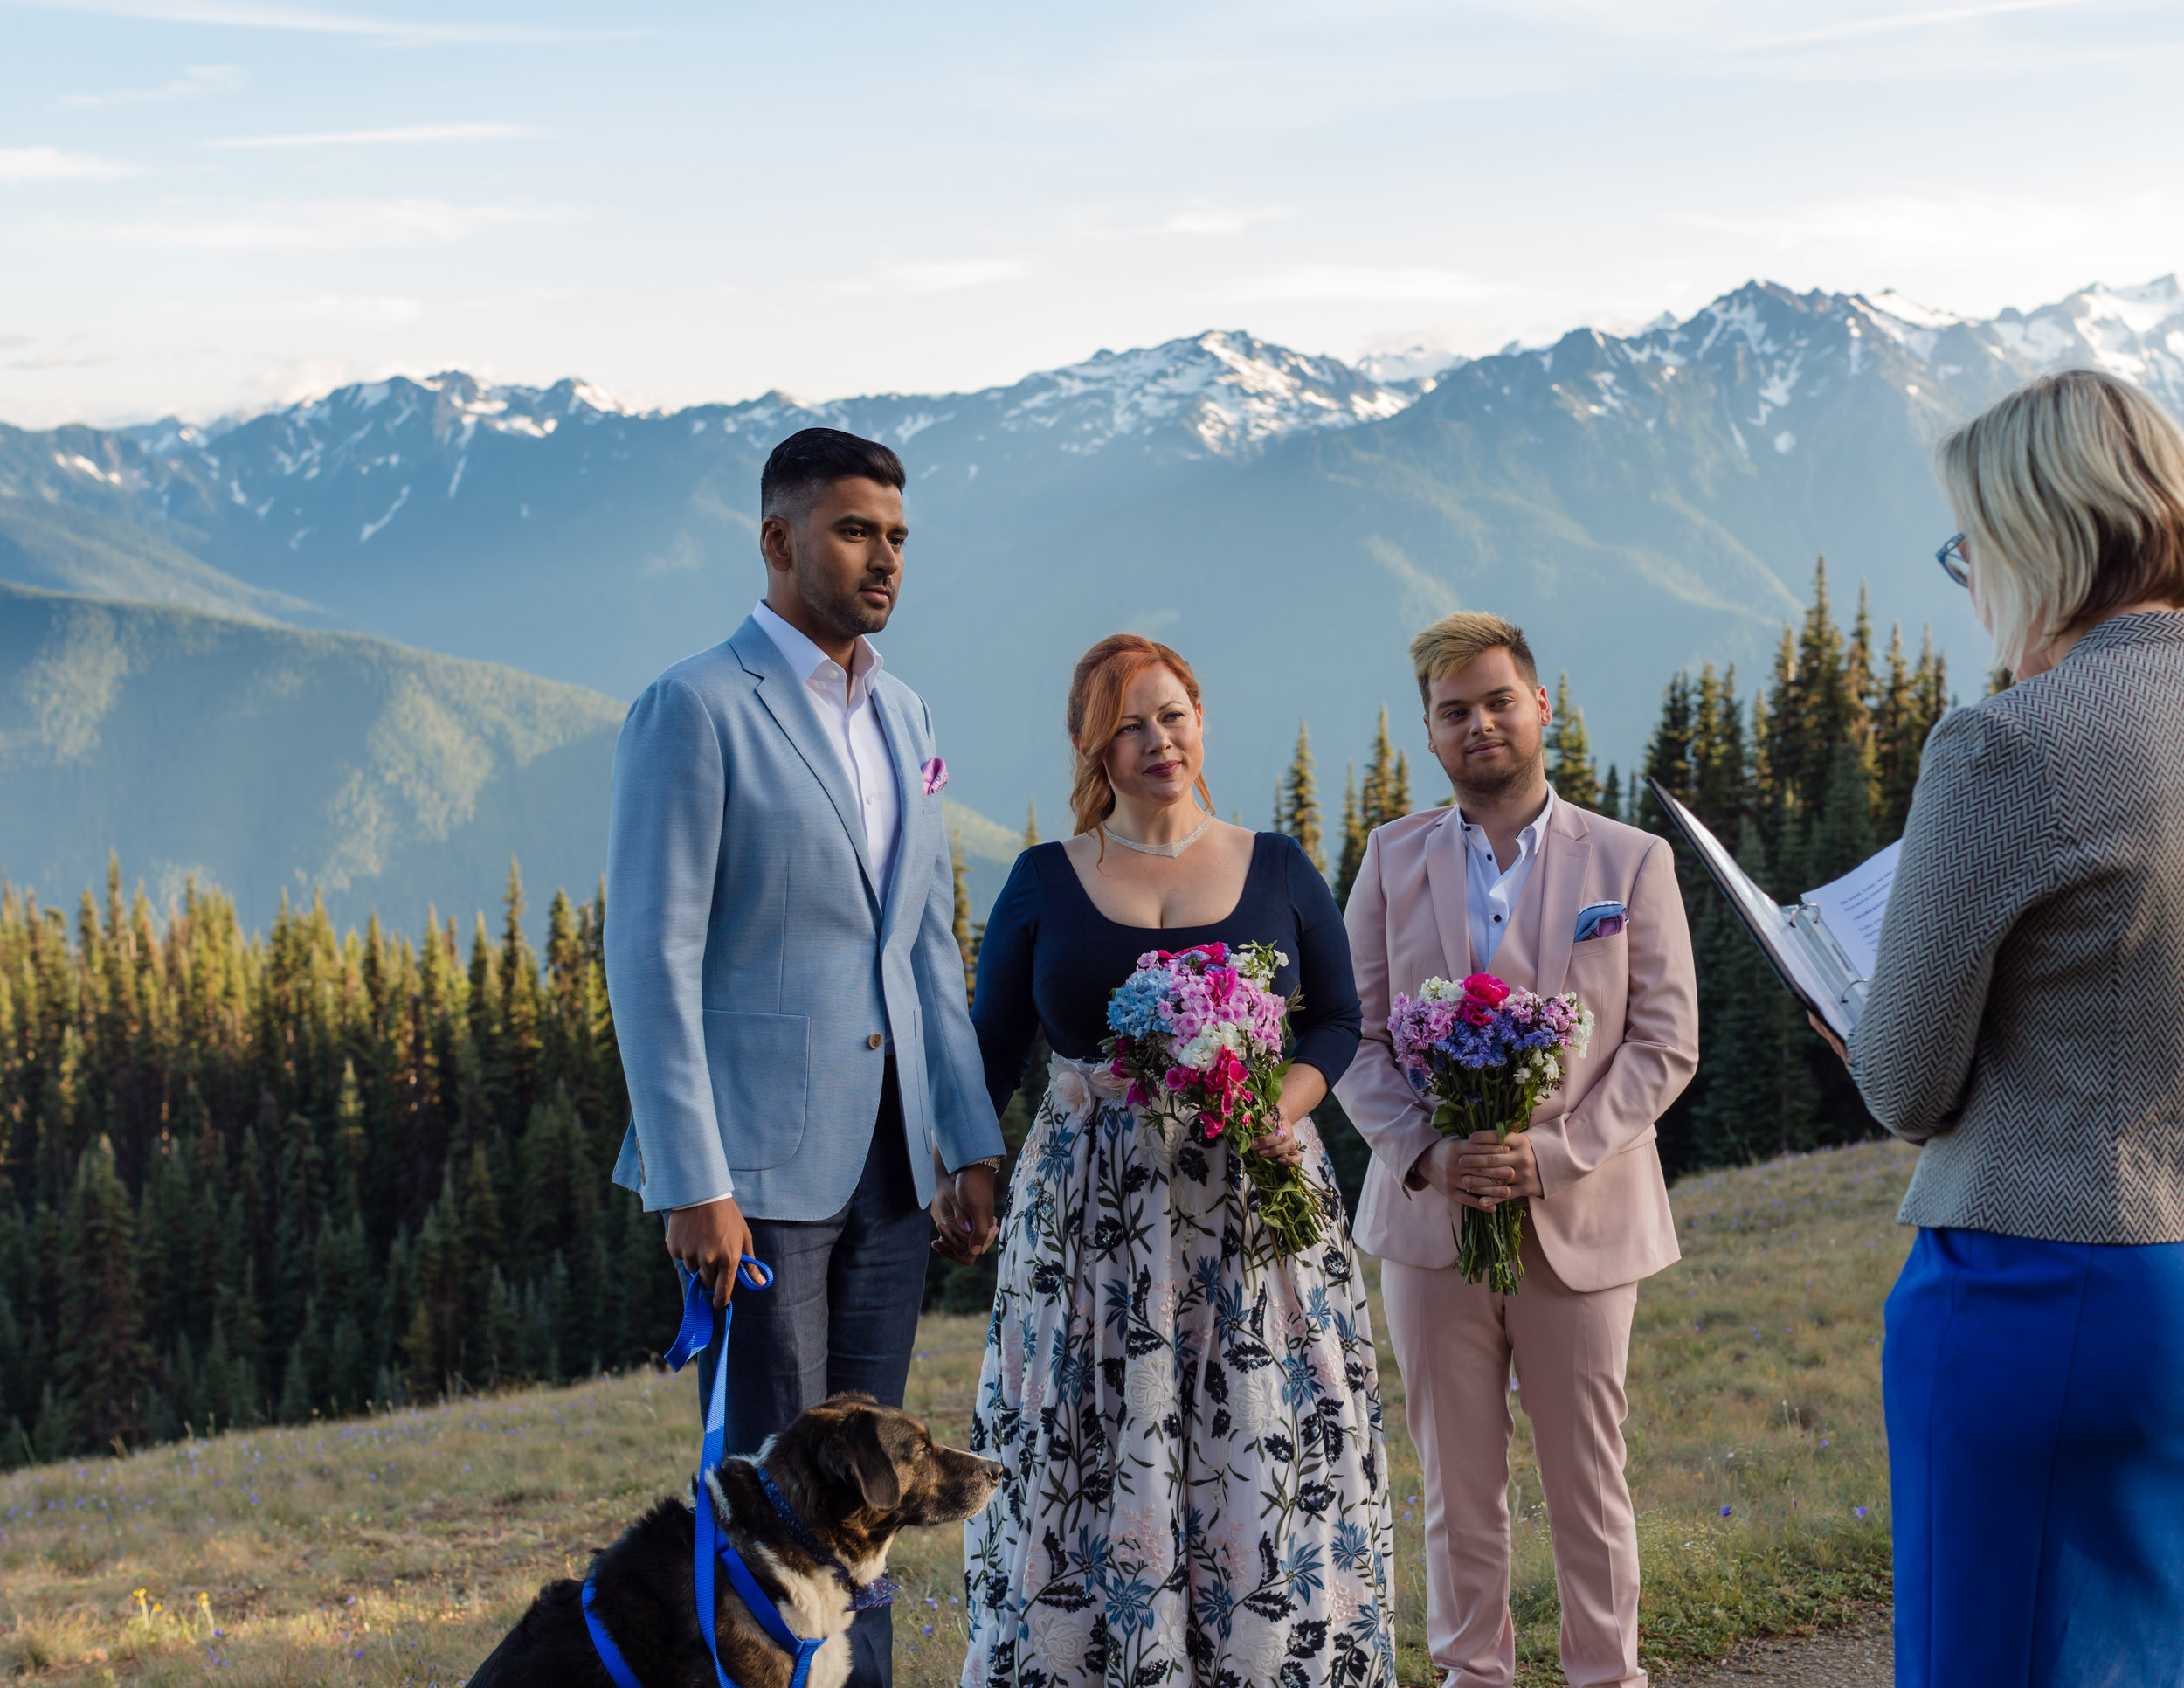 Couple: Christine & Shan July 2018 Elopement at Hurricane Ridge  Photographer:  MJ Photography